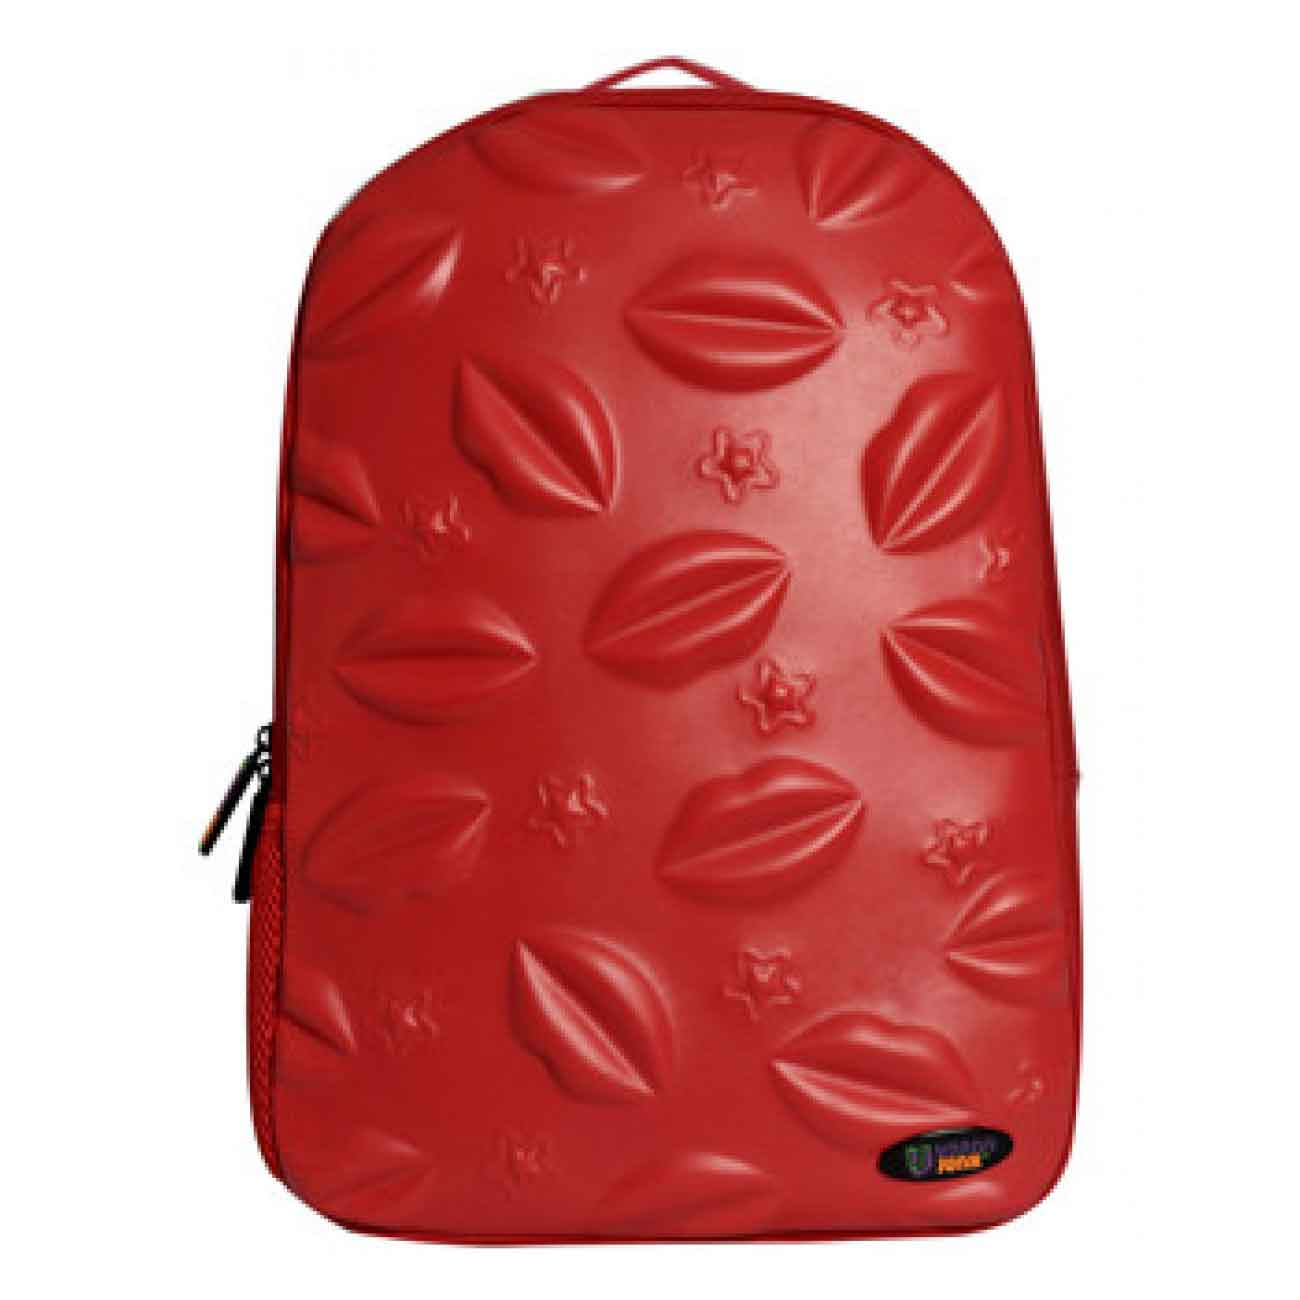 Backpack red star Kissed 3D Lux